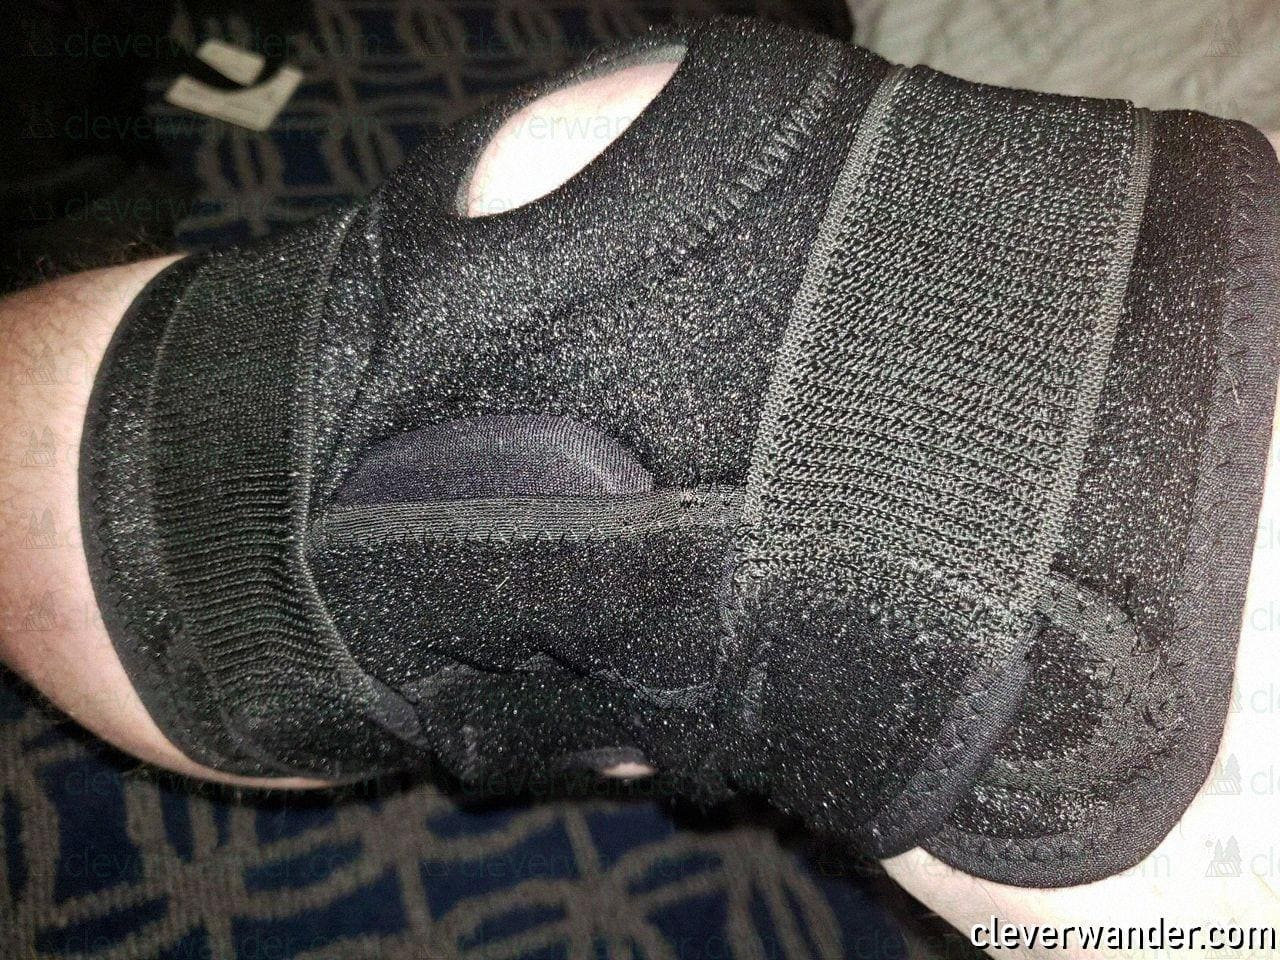 Vive Hinged Knee Brace - image review 2